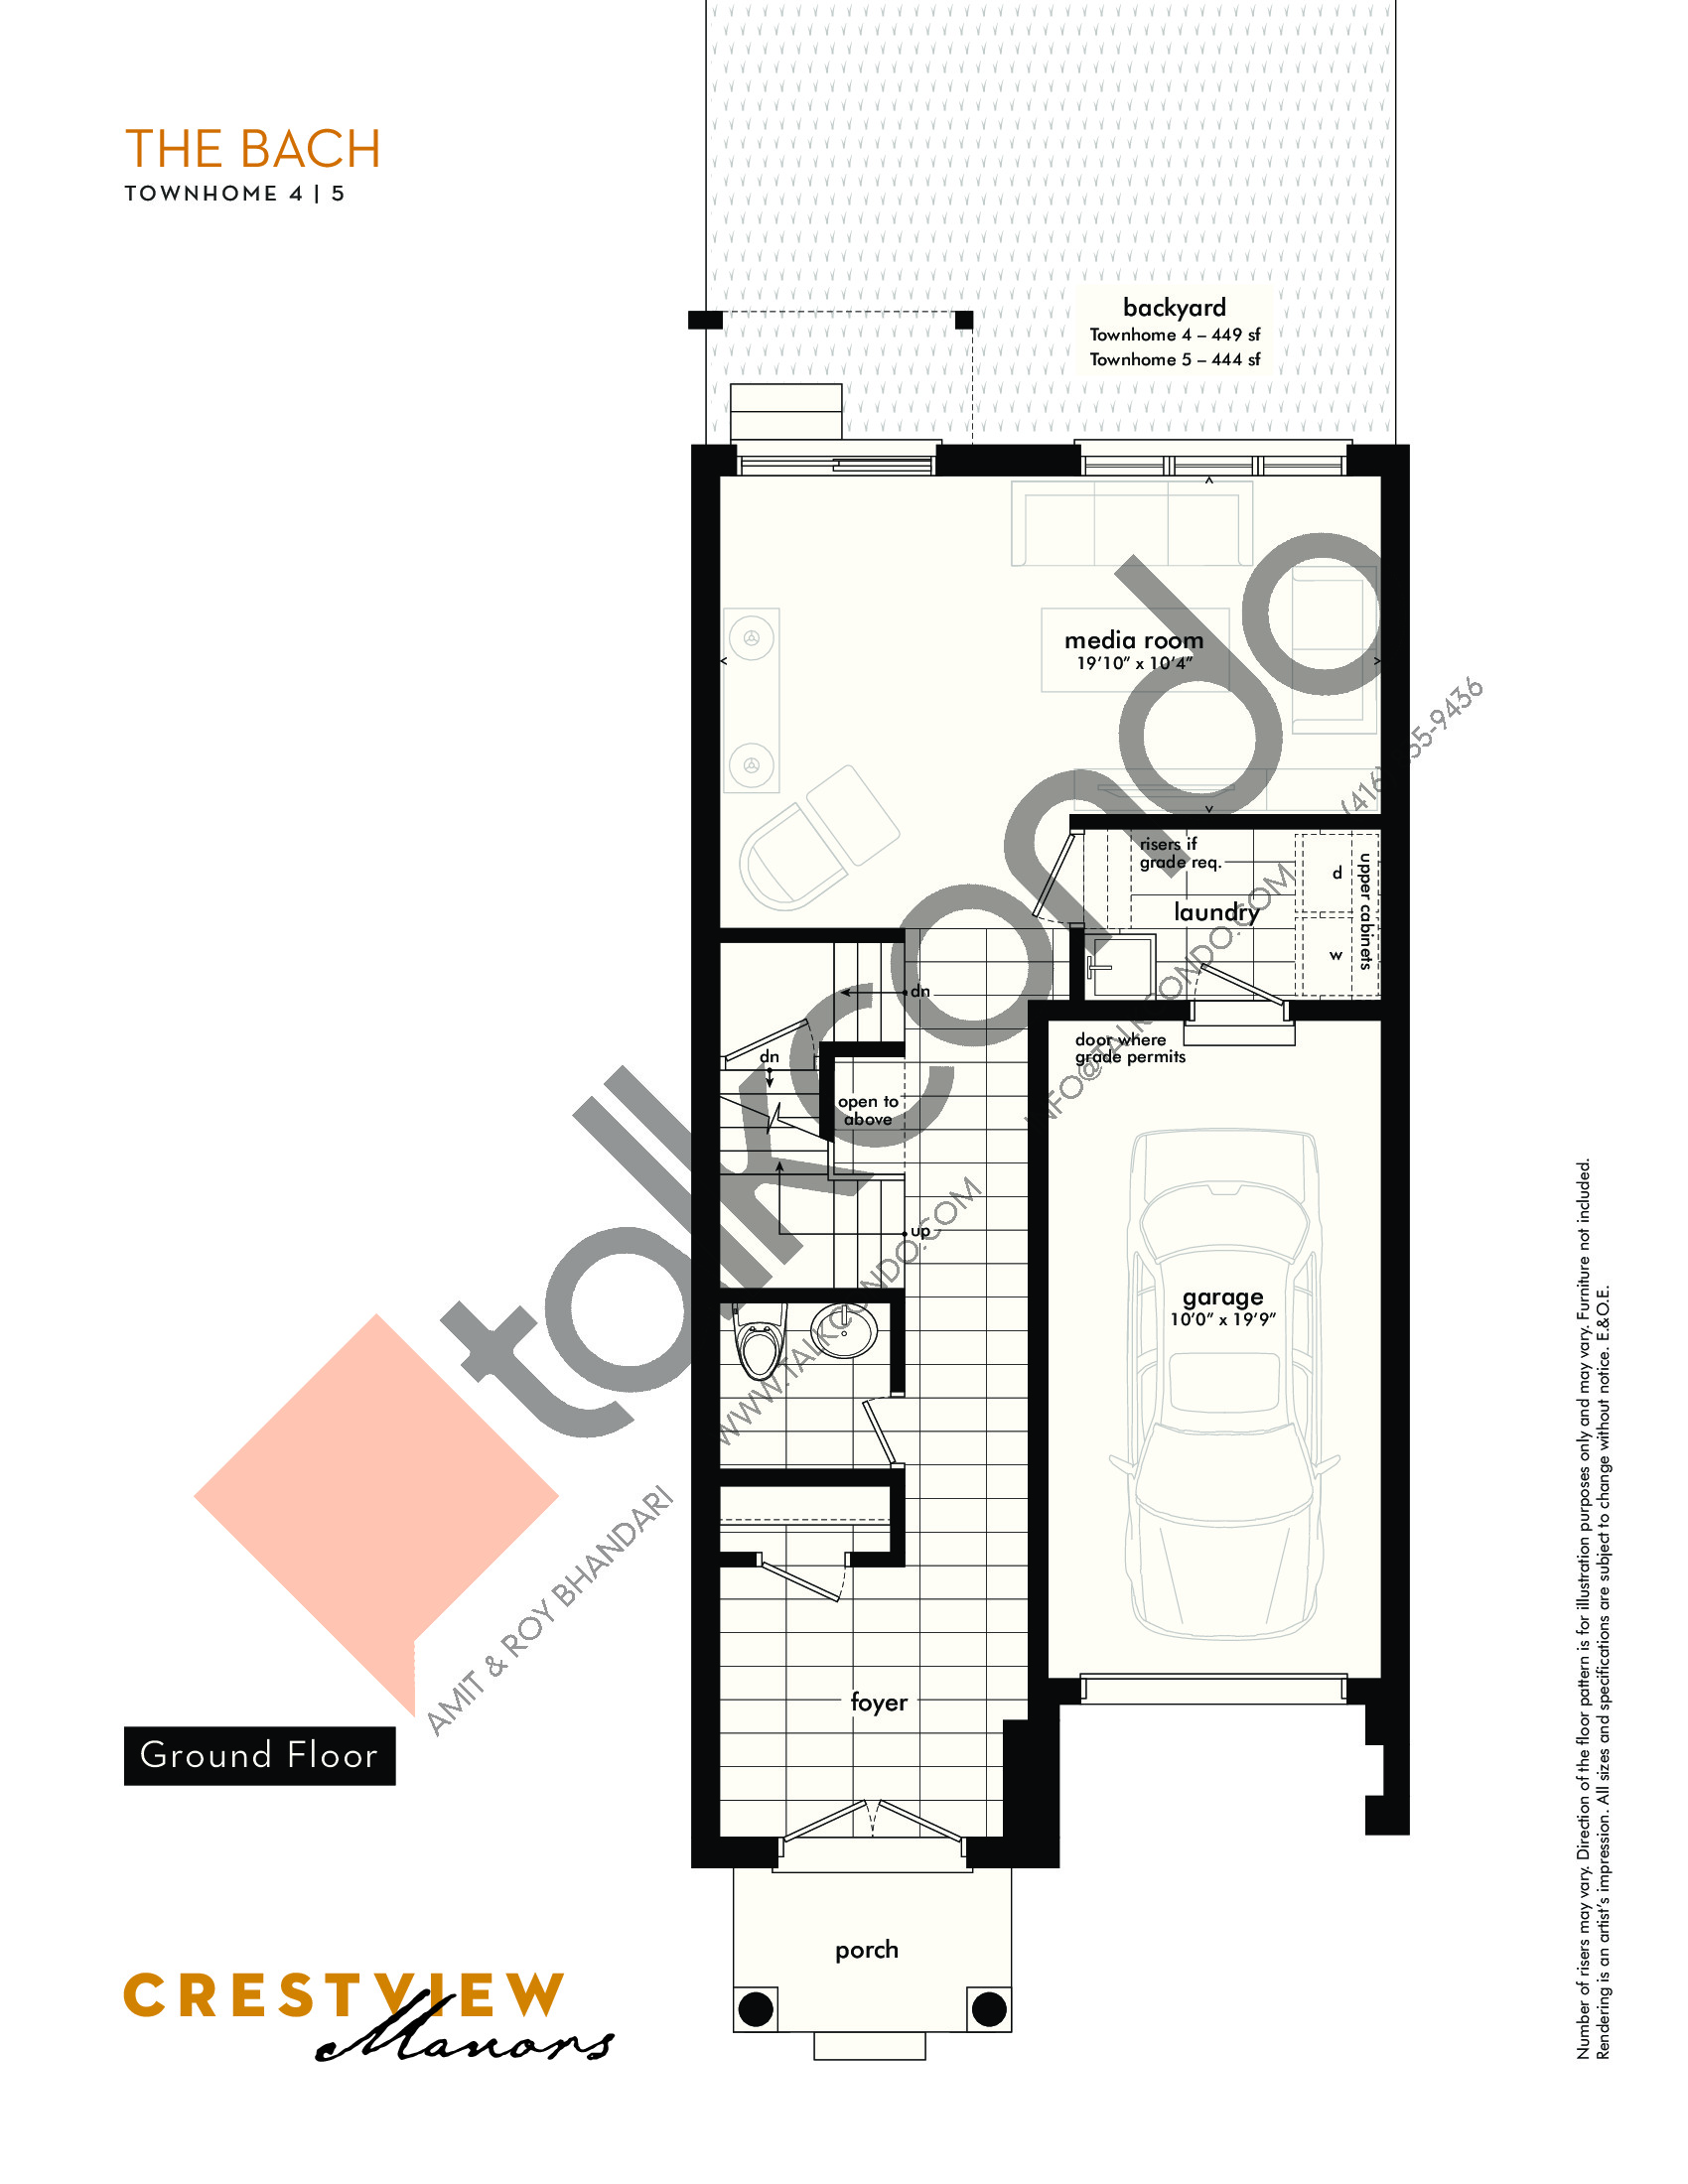 The Bach - Ground Floor Floor Plan at Crestview Manors - 2333 sq.ft